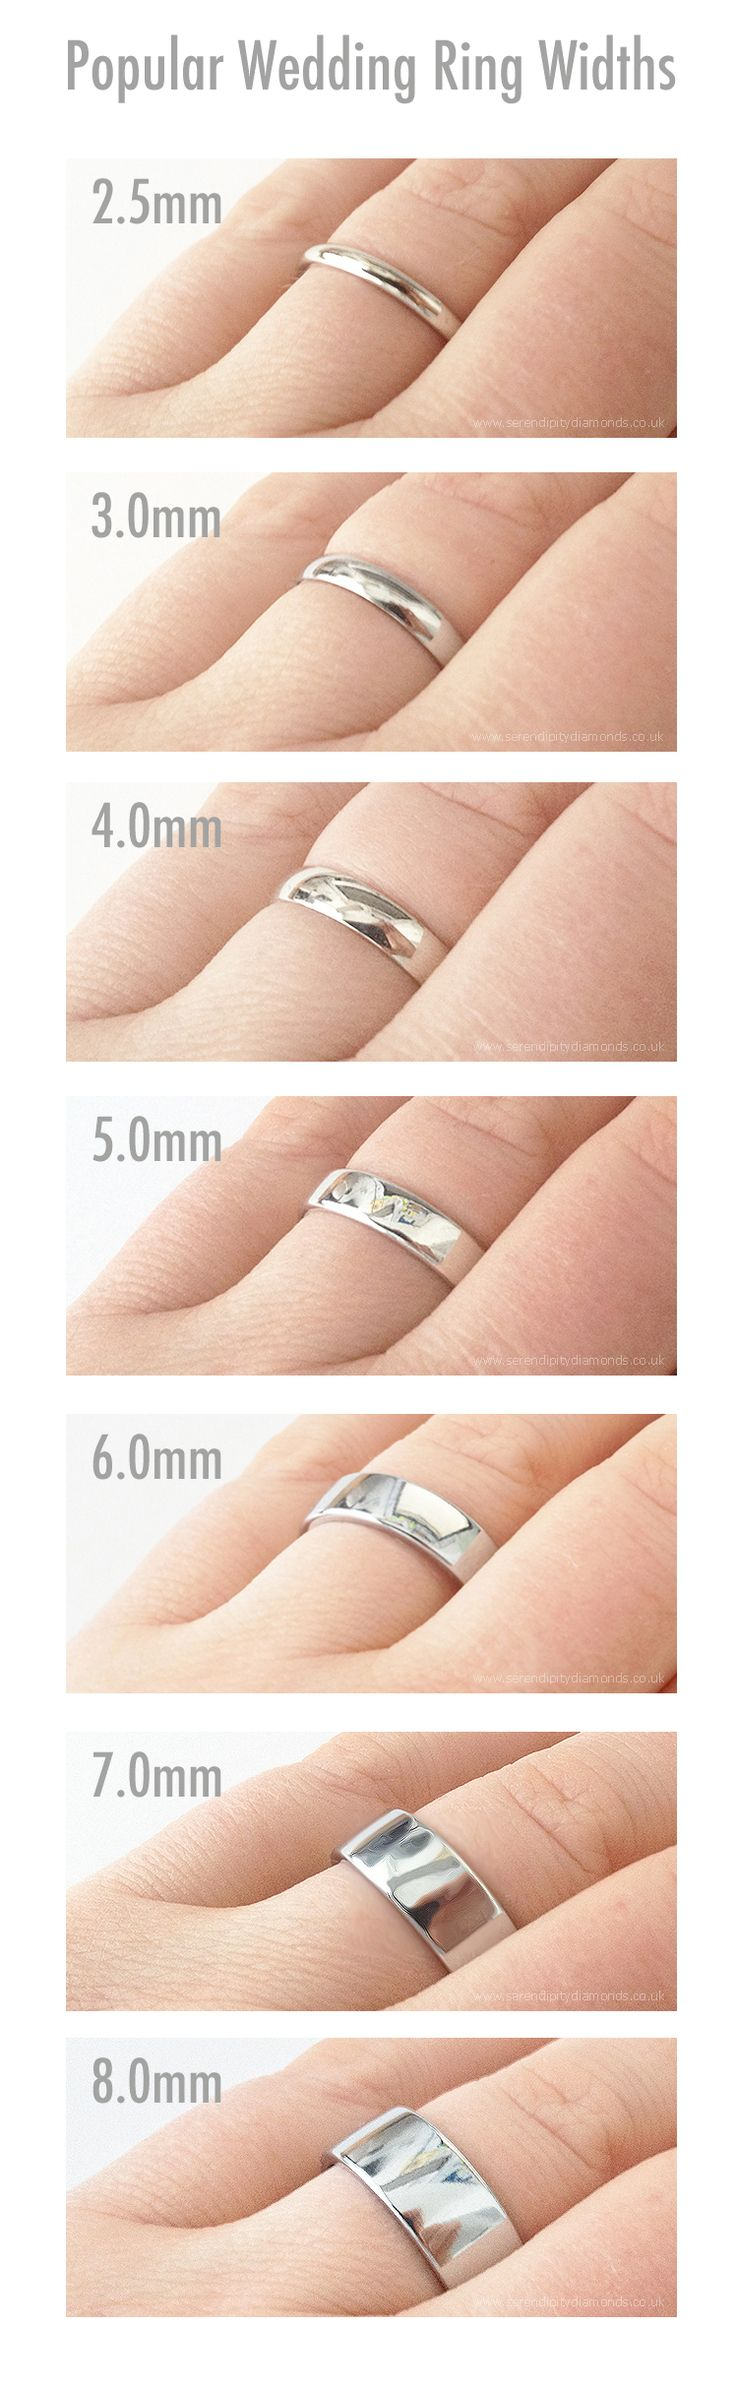 men wedding rings wedding rings men O guia definitivo para escolher suas alian as de casamento Wedding Ring For MenWedding